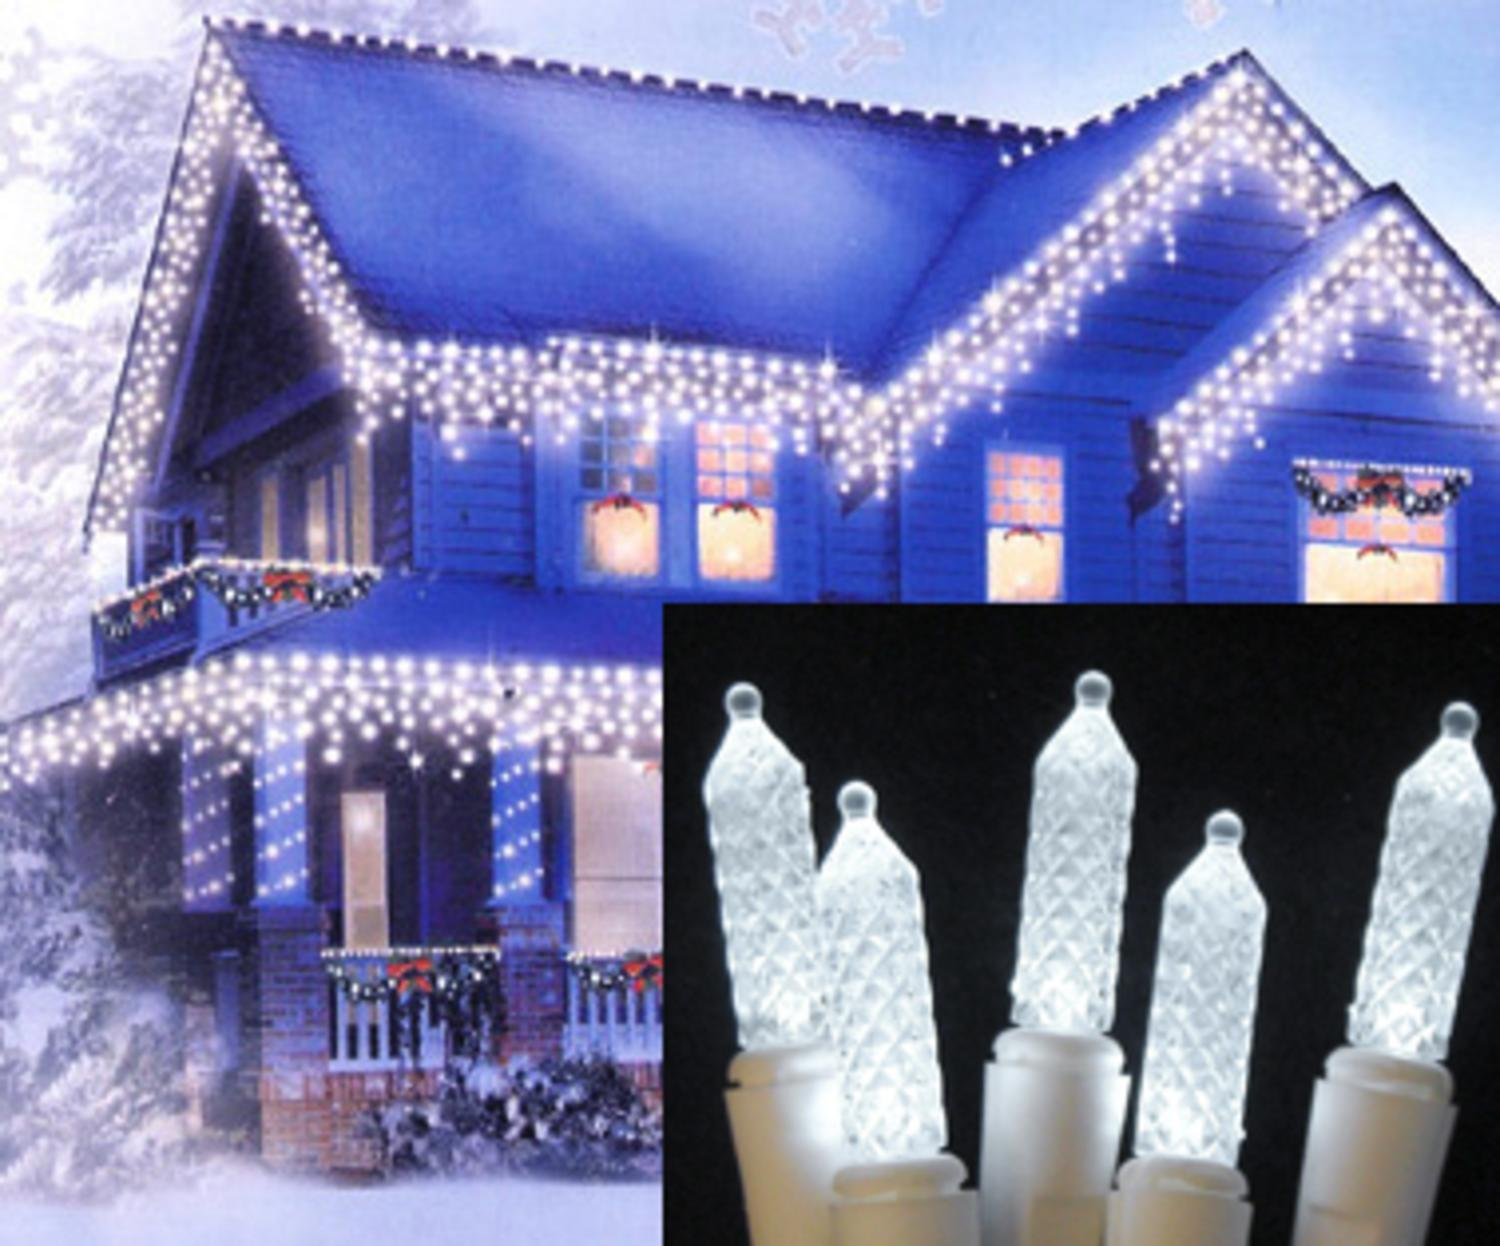 amazoncom northlight pure white led m5 twinkle icicle christmas lights with white wire set of 70 home kitchen